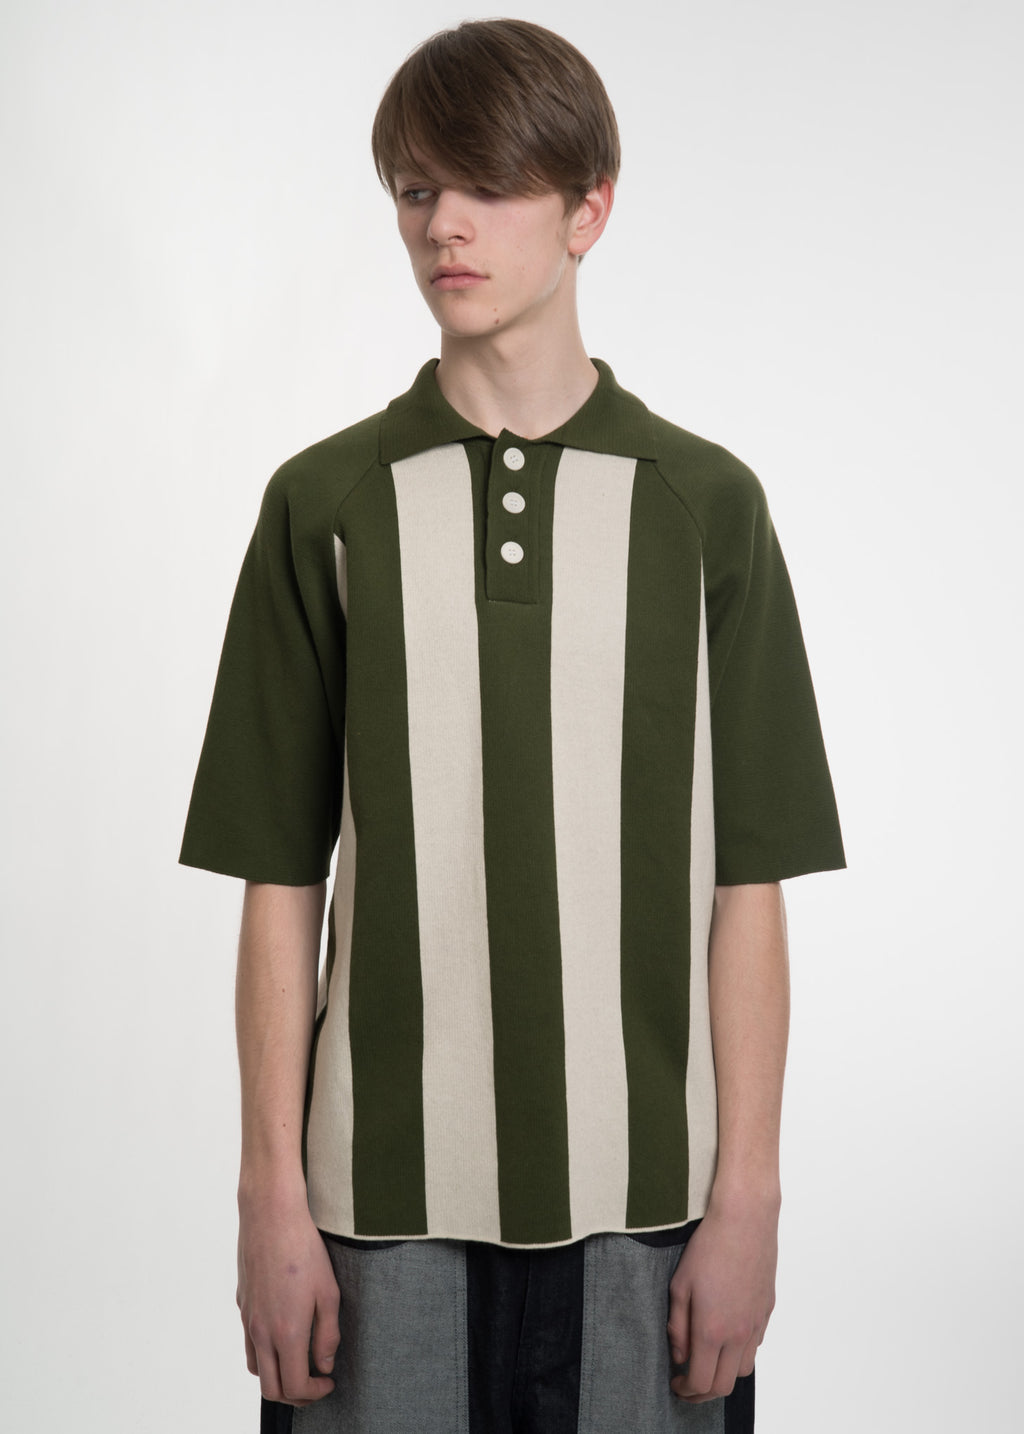 Green and White Polo